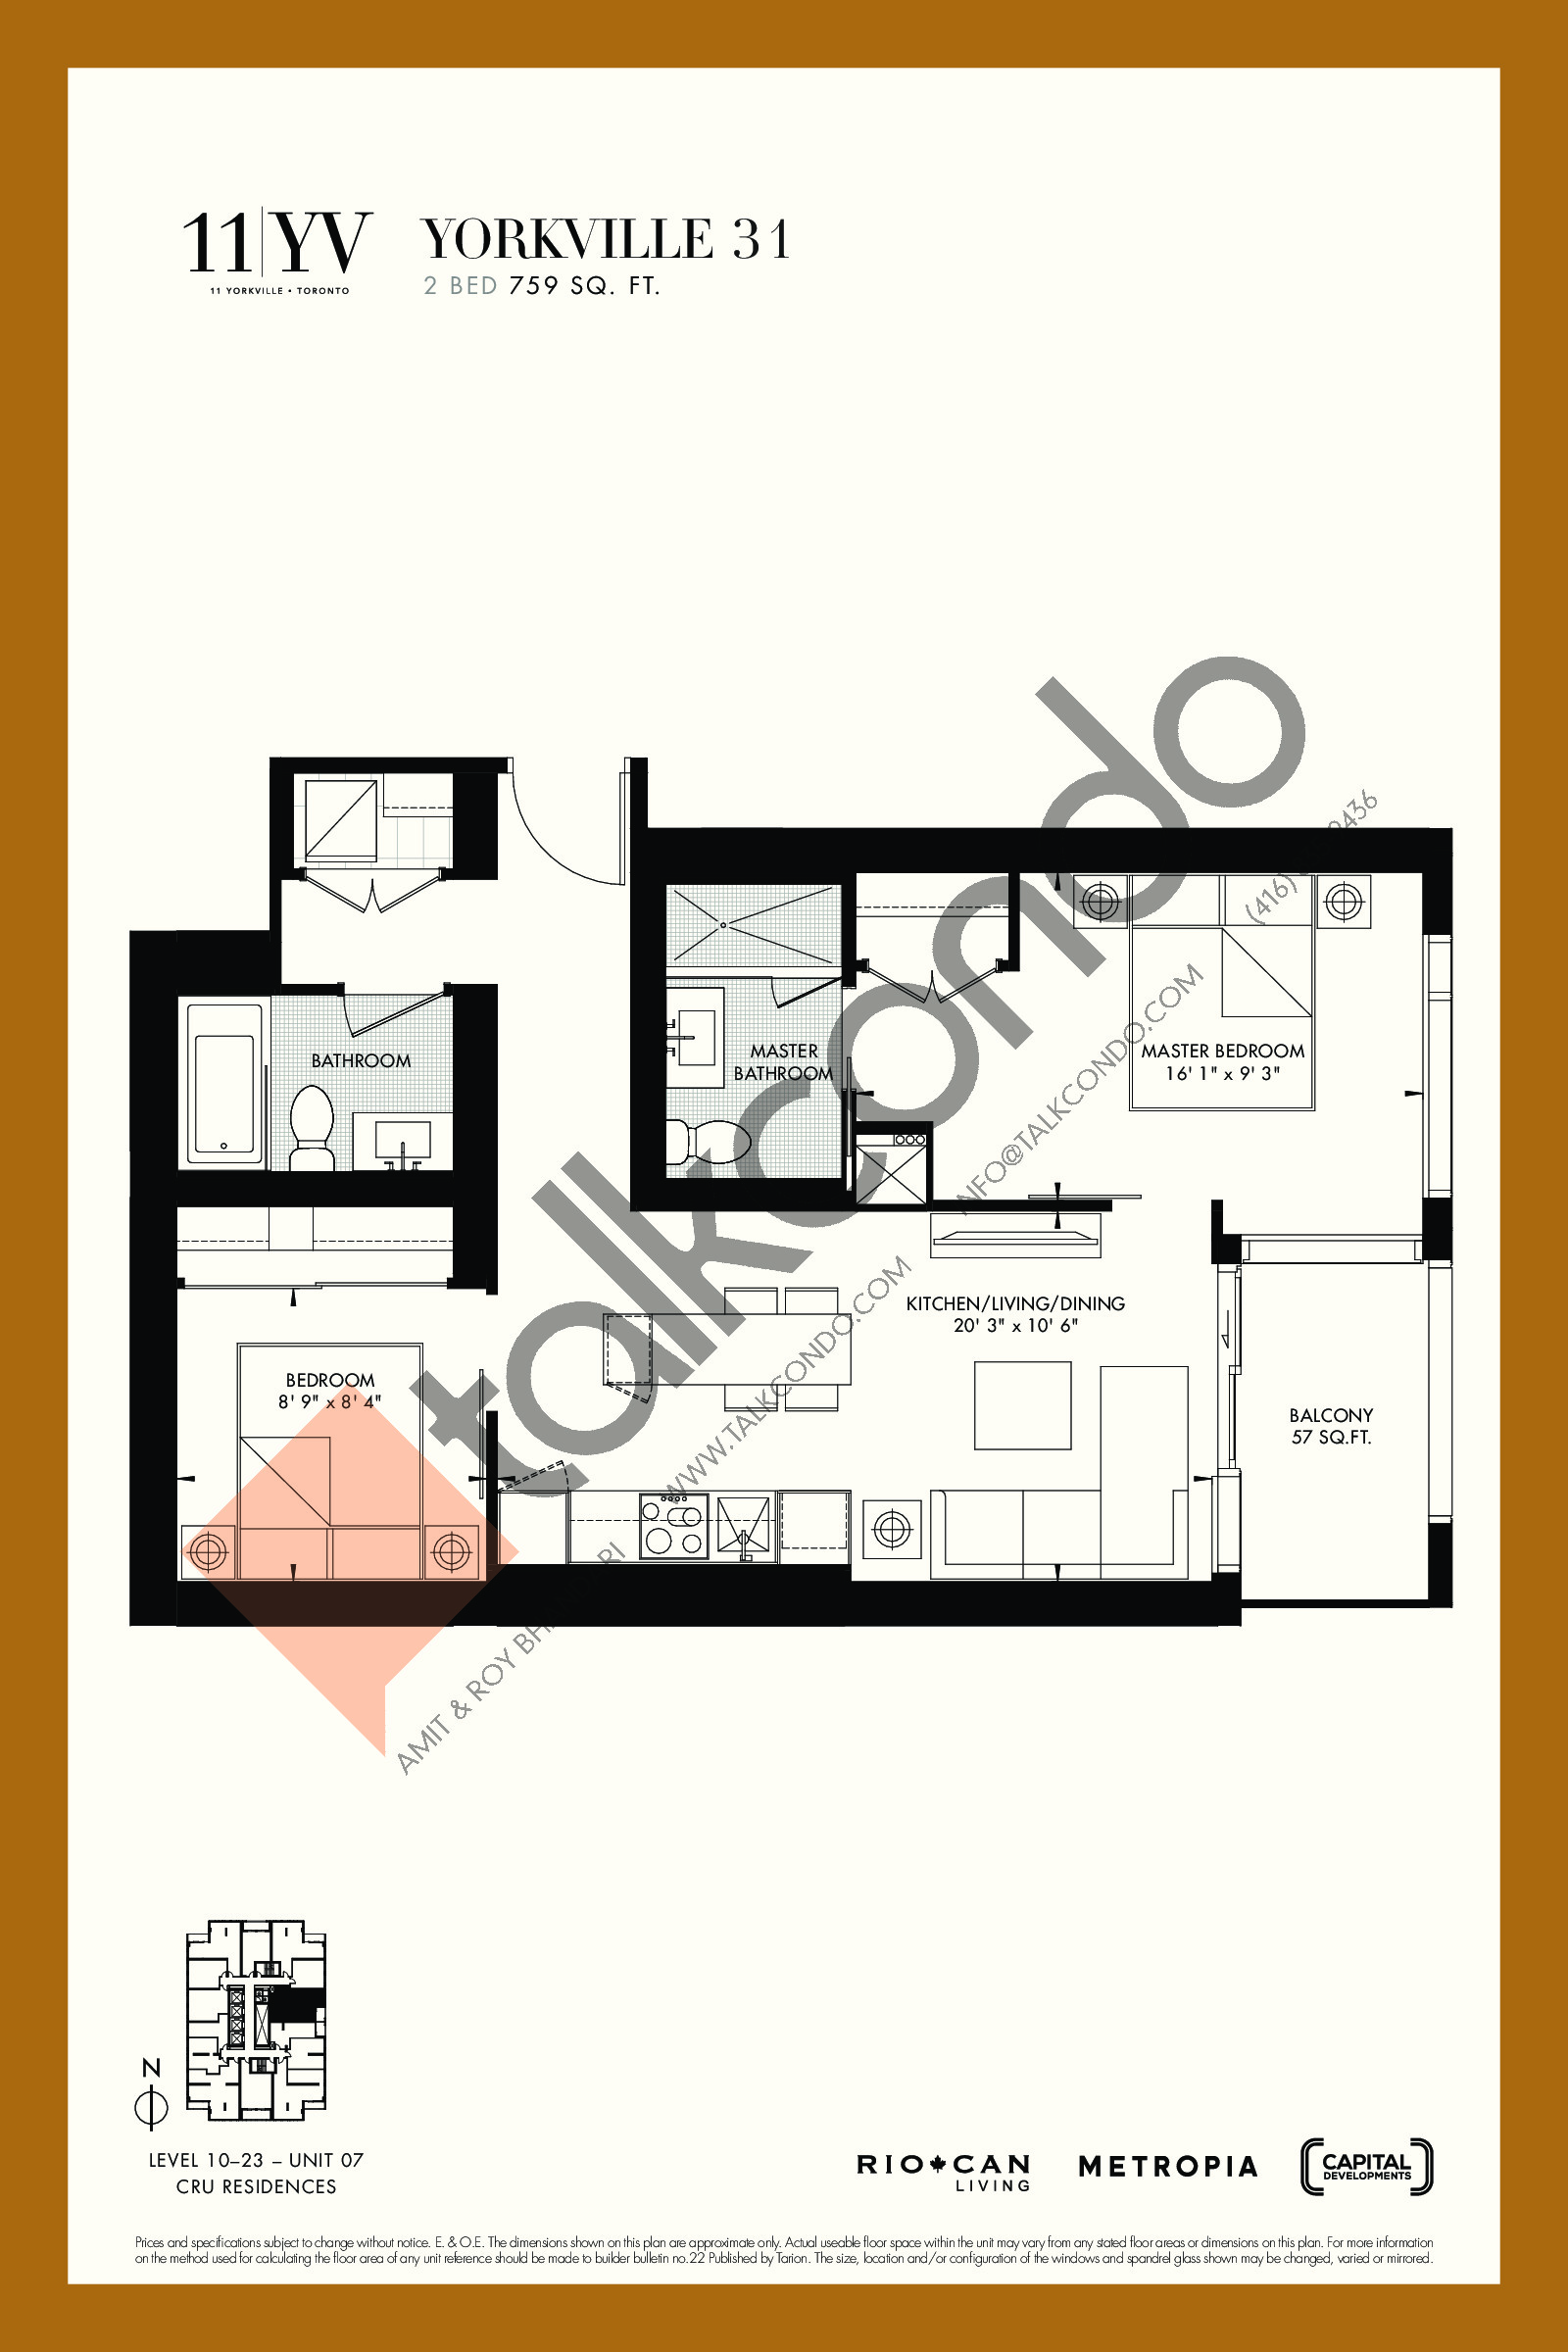 Yorkville 31 Floor Plan at 11YV Condos - 759 sq.ft